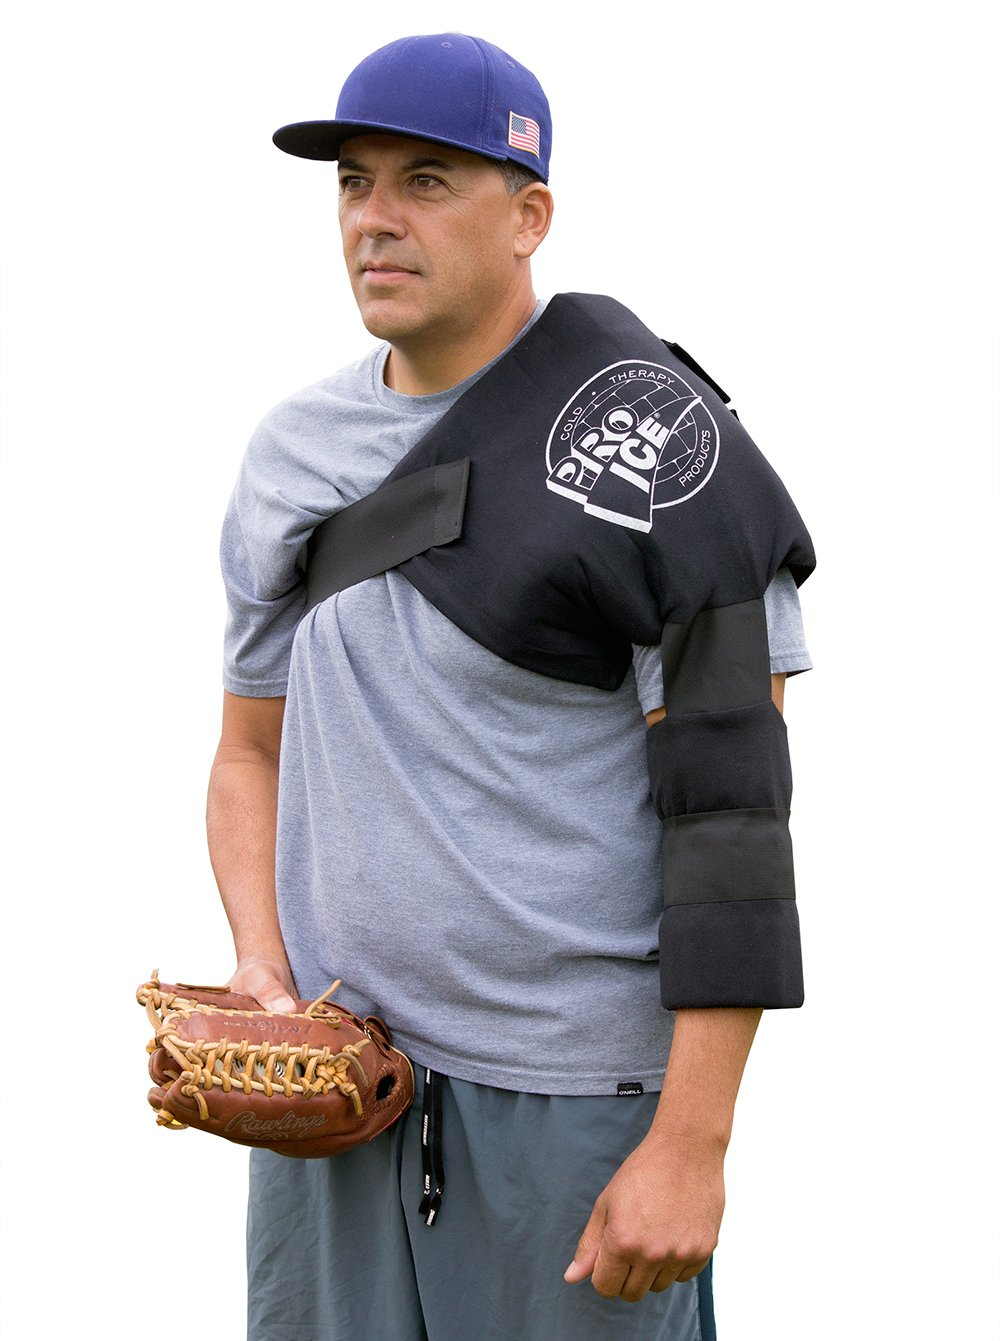 PRO ICE COLD THERAPY PRODUCTS Pro Ice Cold Therapy Wrap for Pro Shoulder Elbow PI240 to Treat Rotator Cuff Injury with Icing and Compression